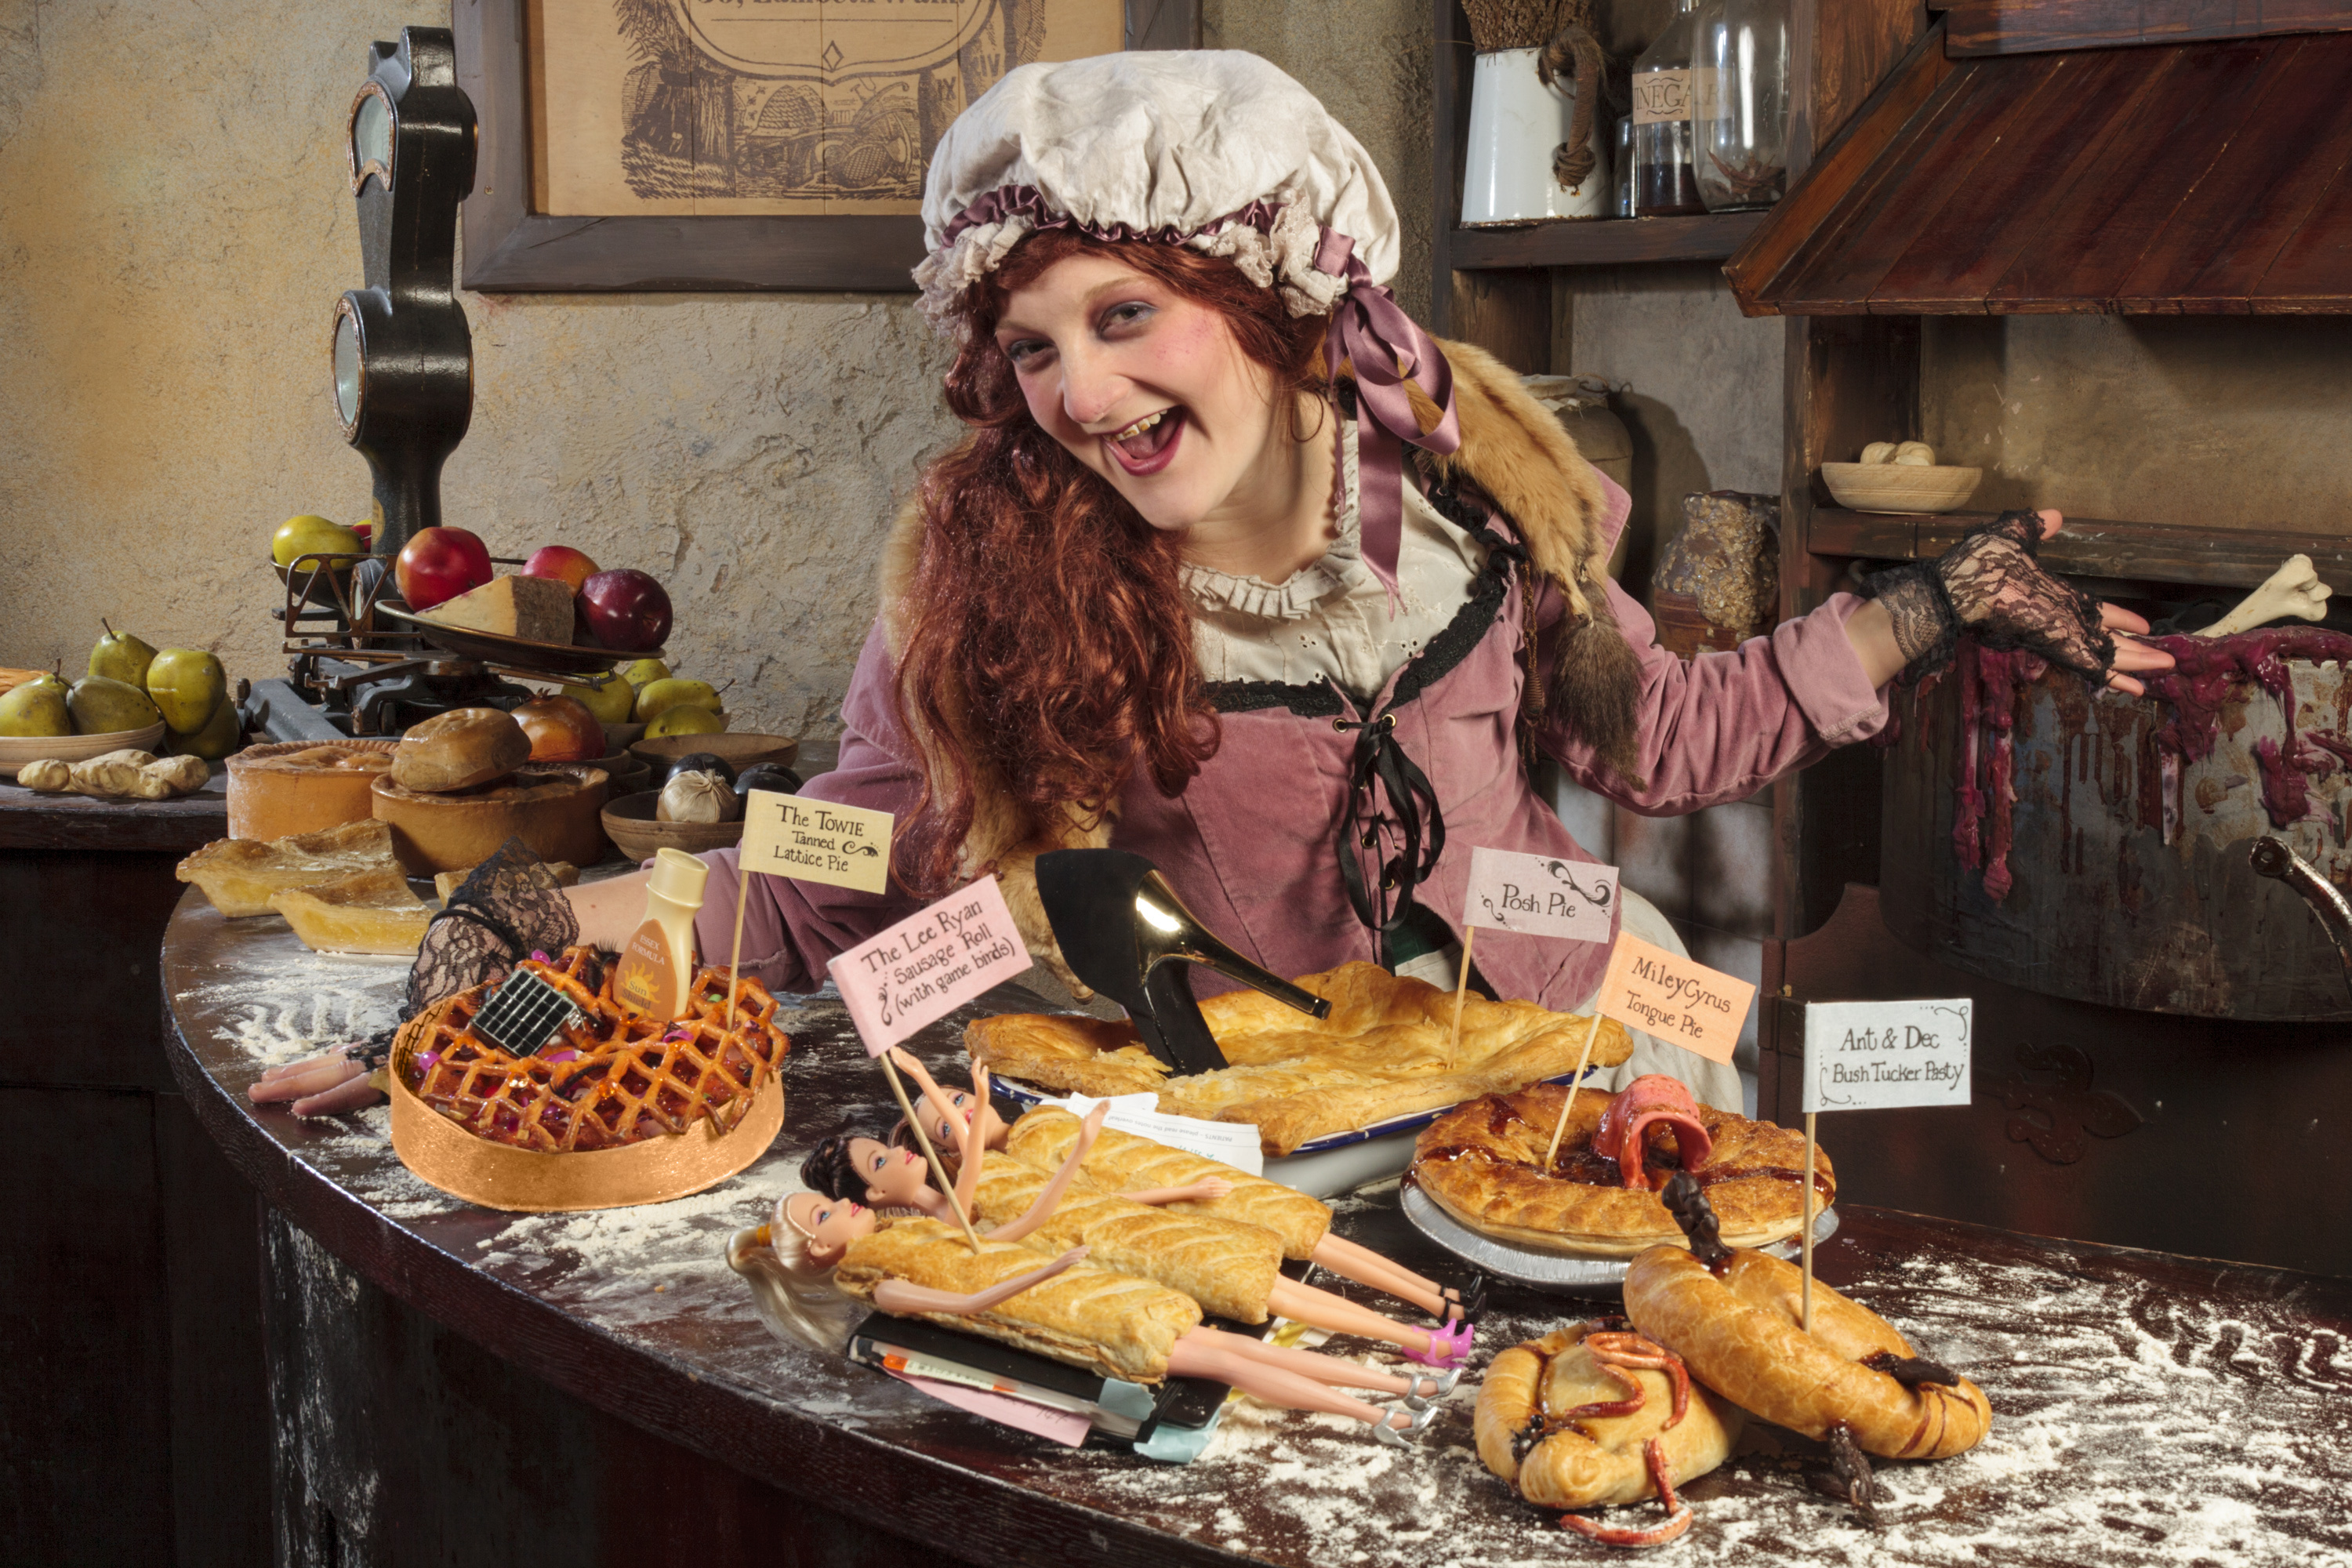 london-dungeon-mrs-lovett-stars-in-my-pies